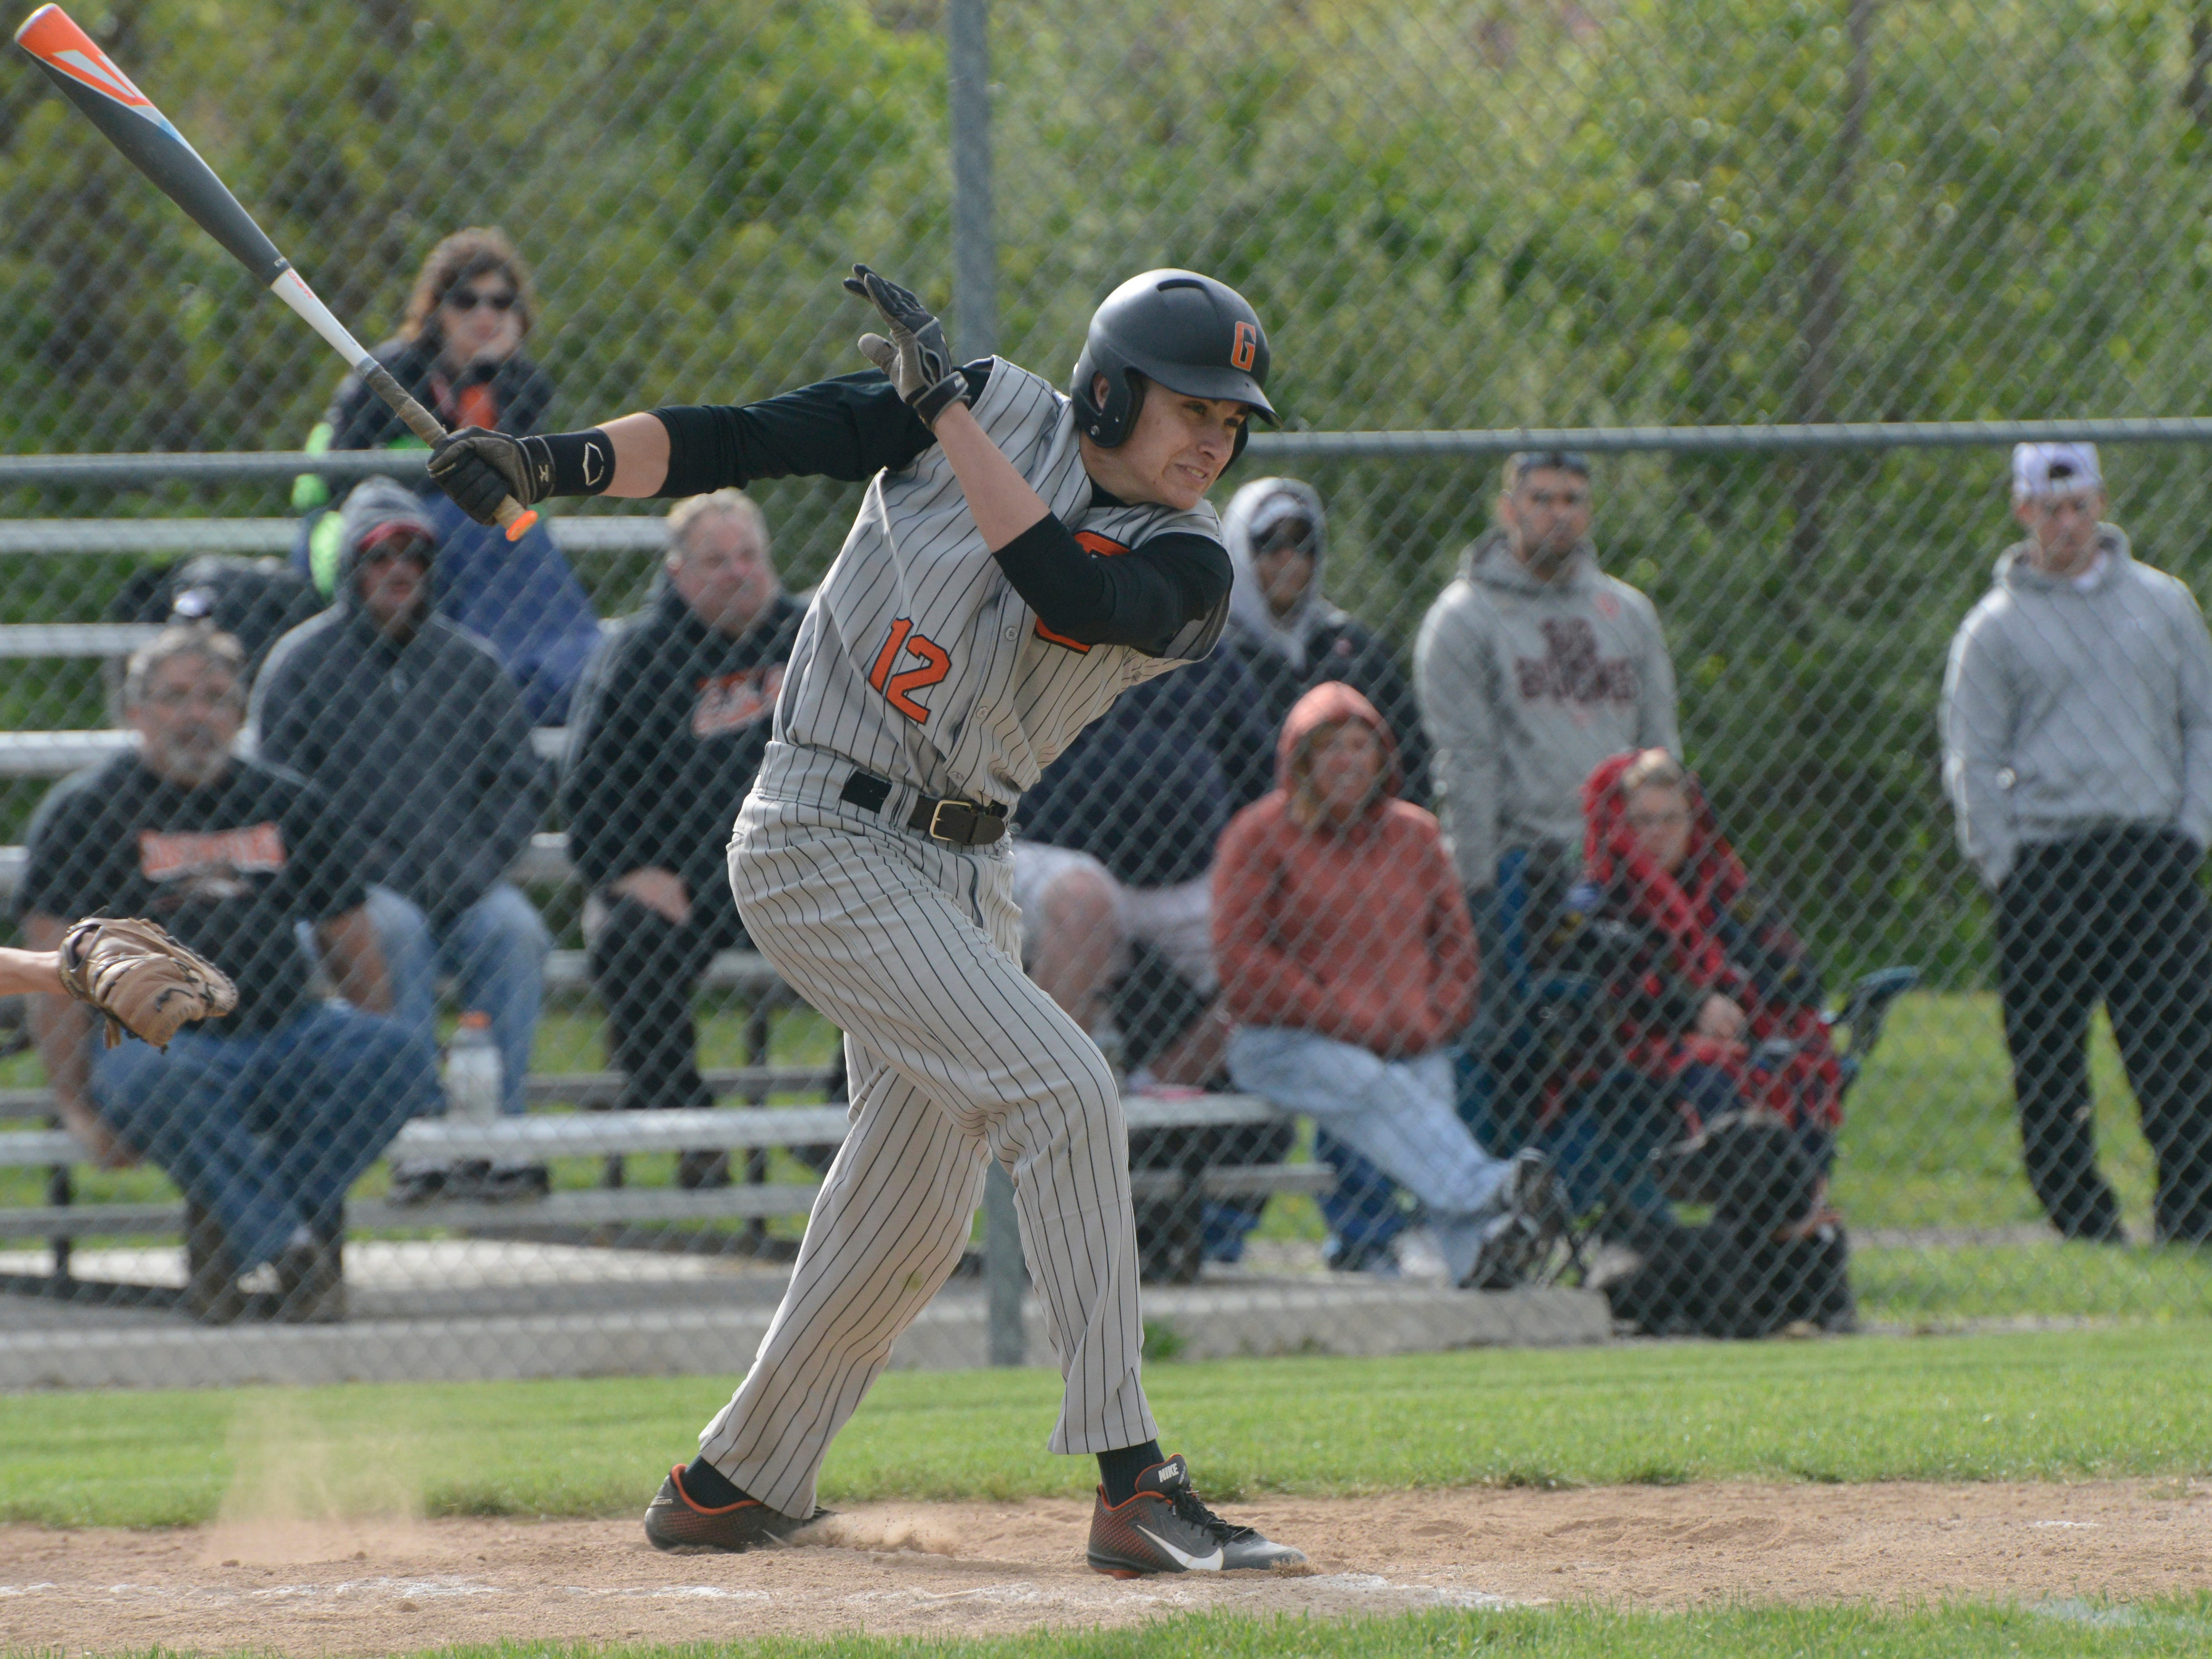 Gibsonburg's Andrew Dellinger swings in an at-bat against Old Fort on Wednesday afternoon.